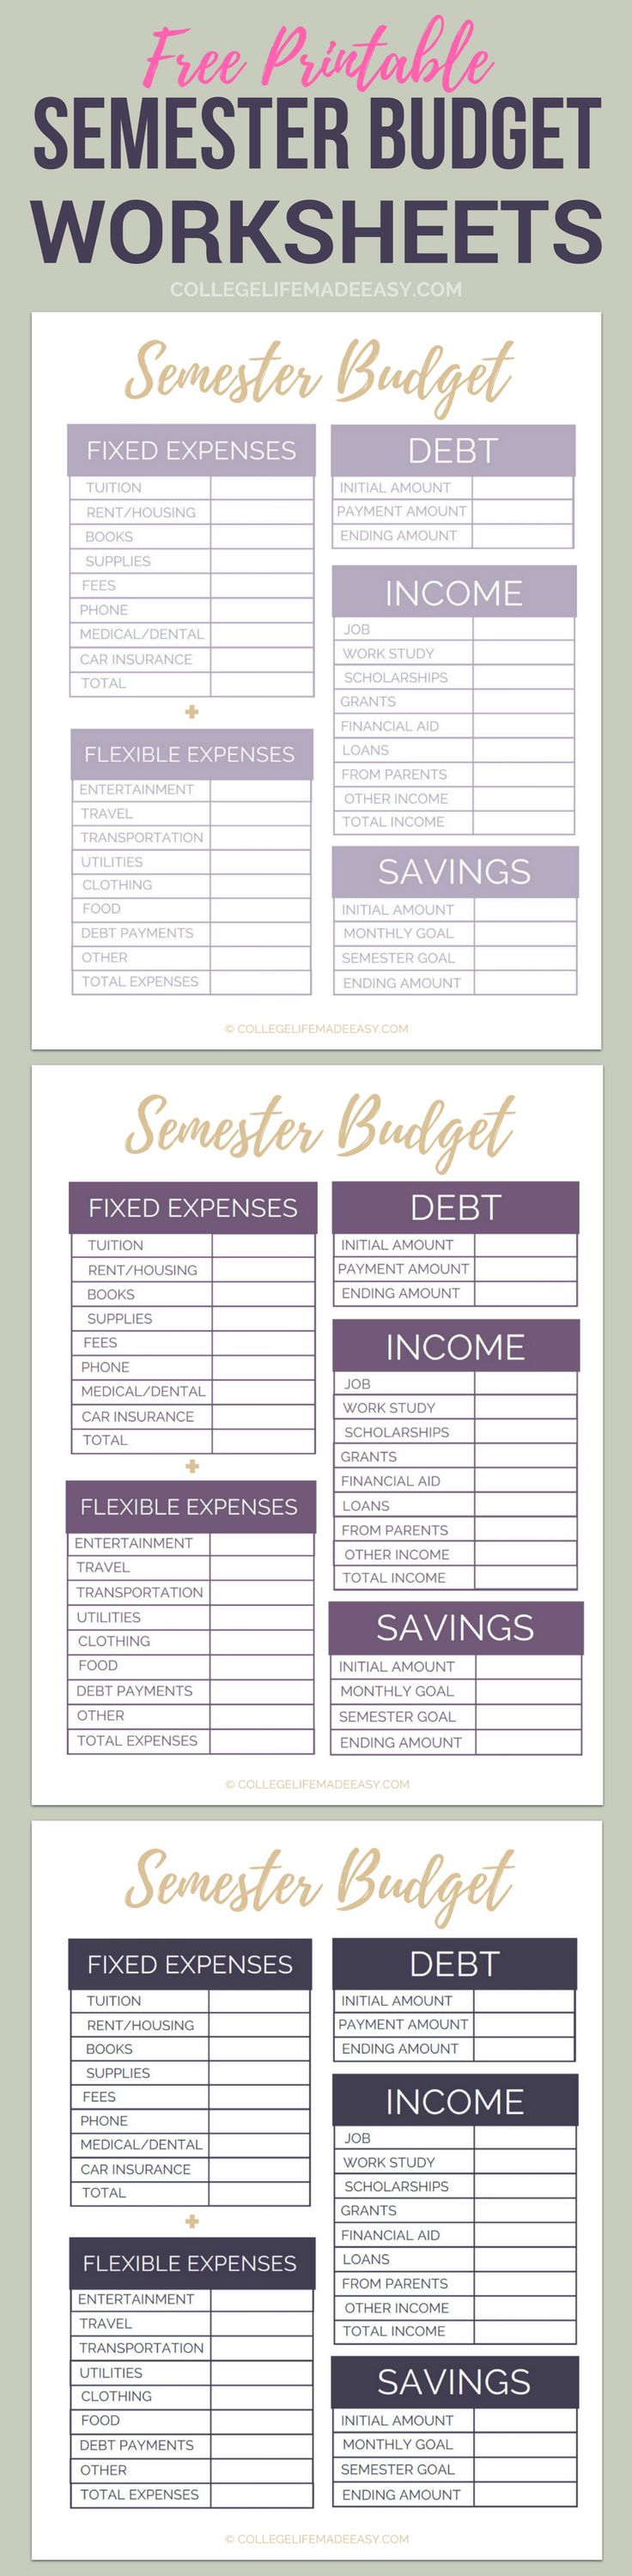 worksheet Budget Worksheet For College Students 25 unique college student budget ideas on pinterest free printable semester worksheets organize your finances in minutes